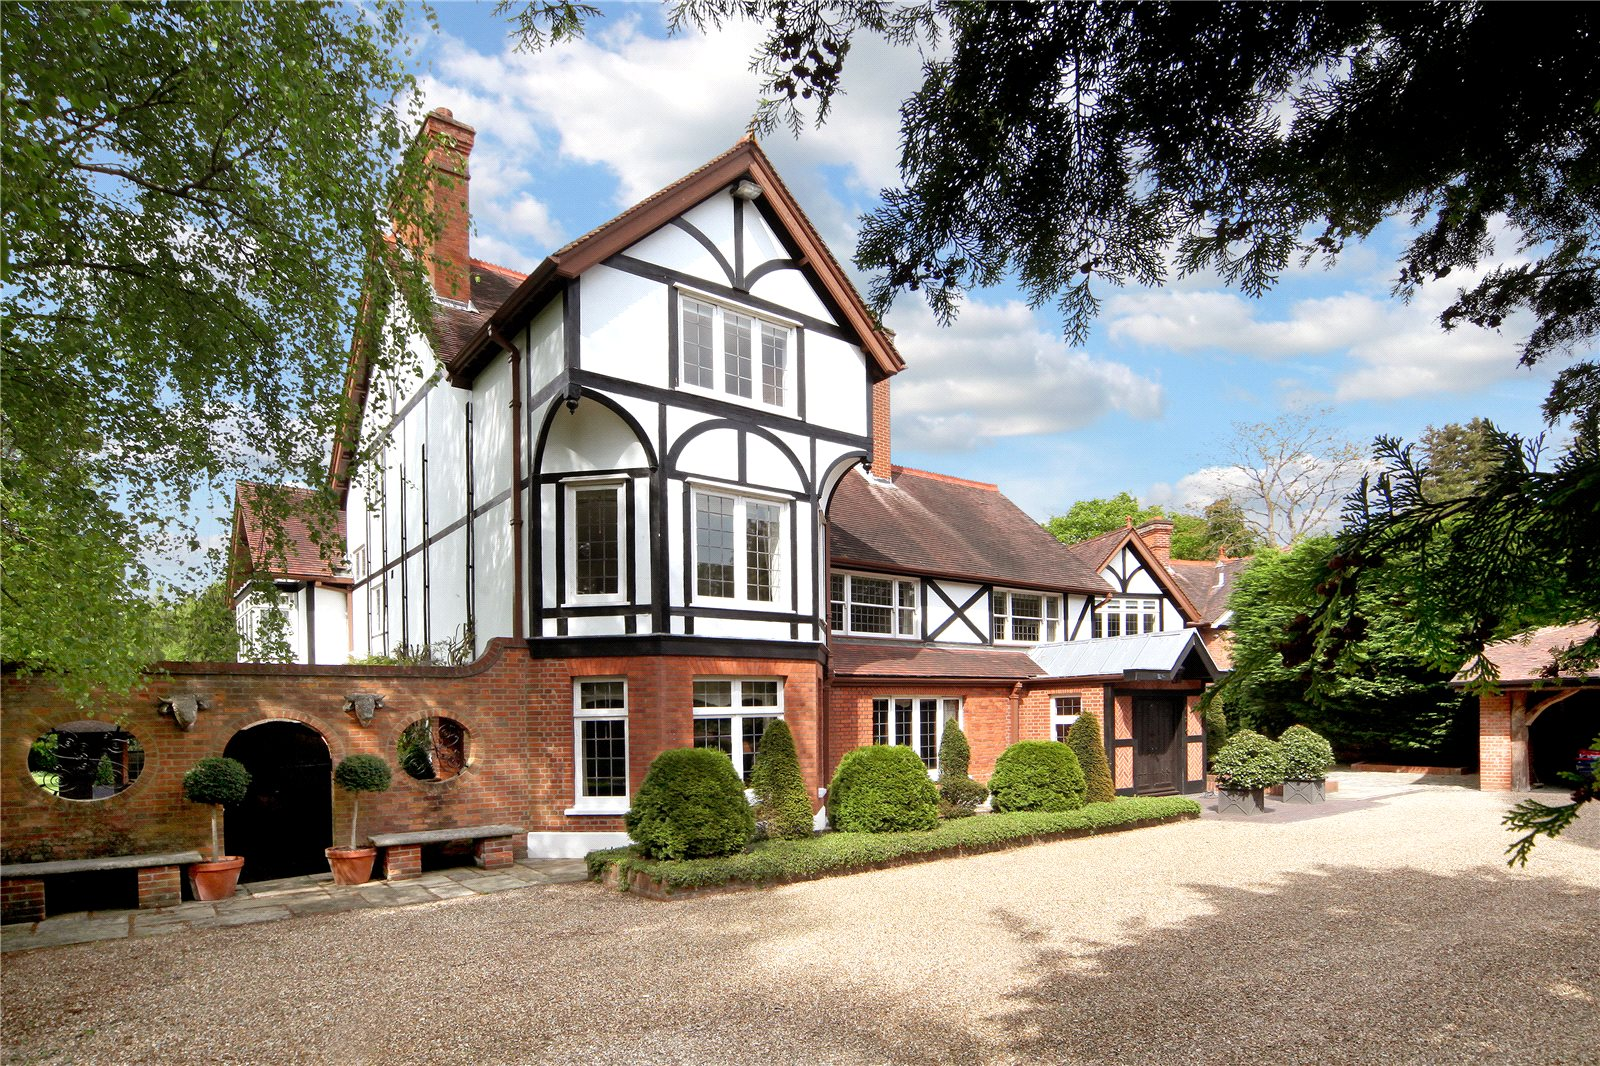 Single Family Home for Sale at Bishopsgate Road, Englefield Green, Egham, Surrey, TW20 Egham, England